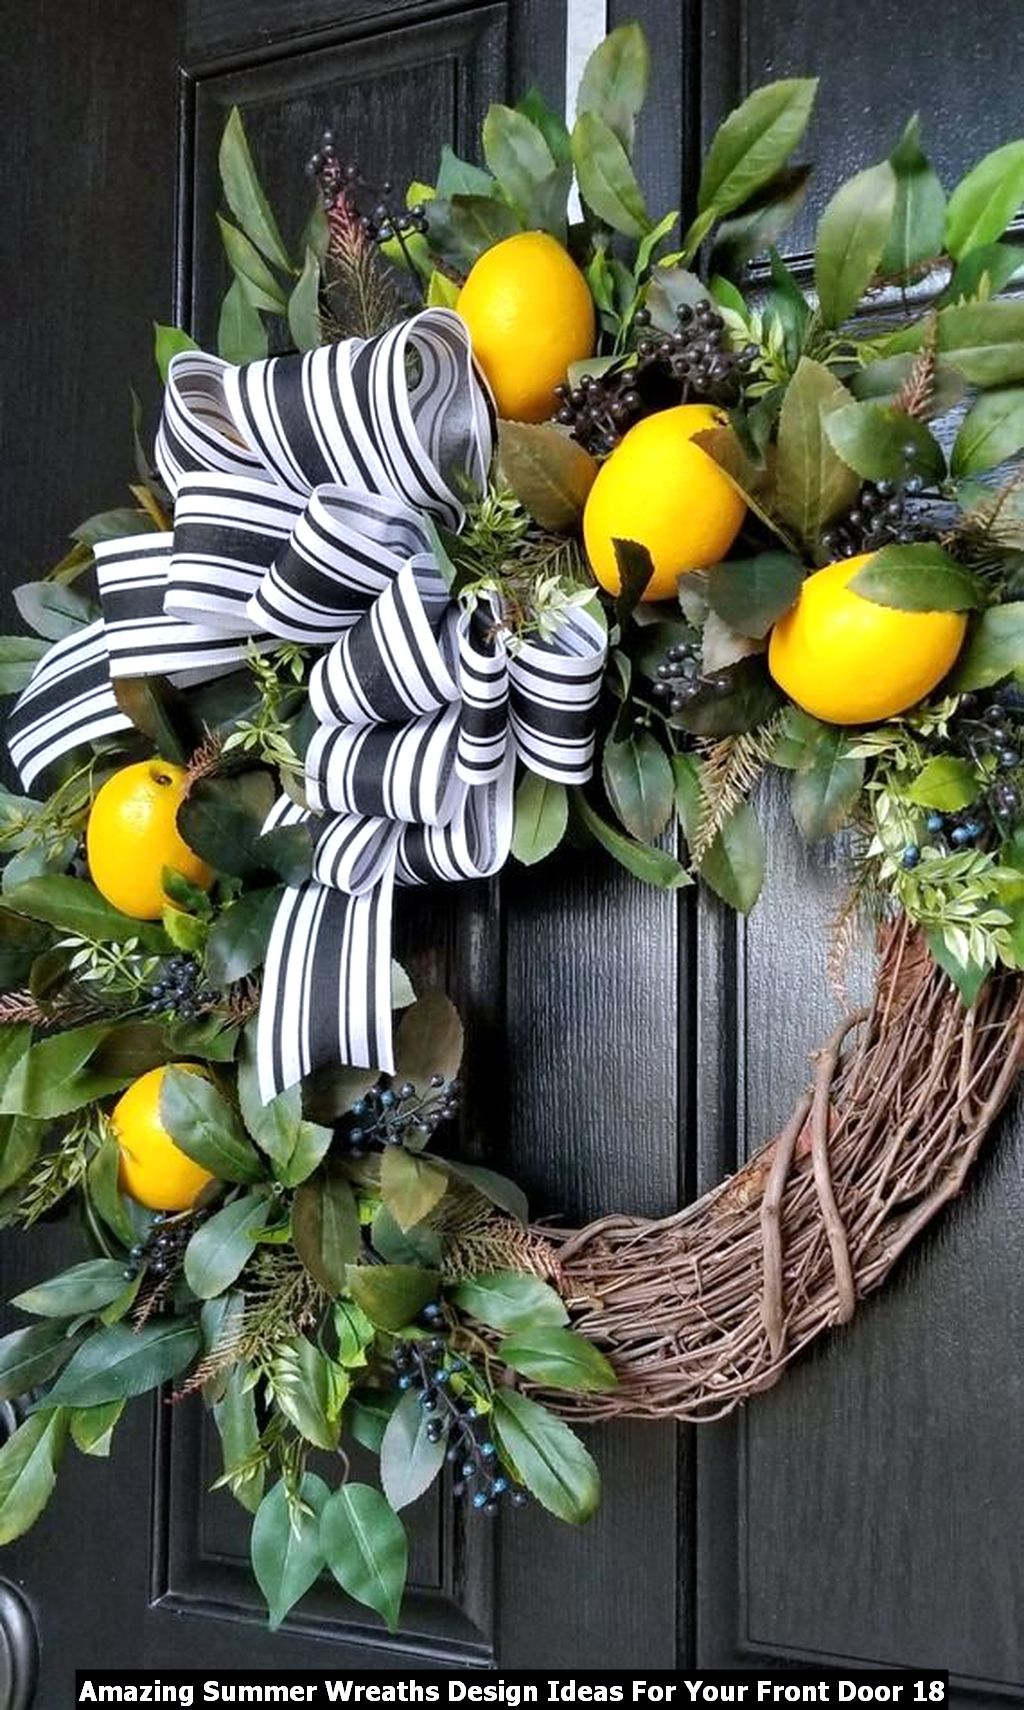 Amazing Summer Wreaths Design Ideas For Your Front Door 18